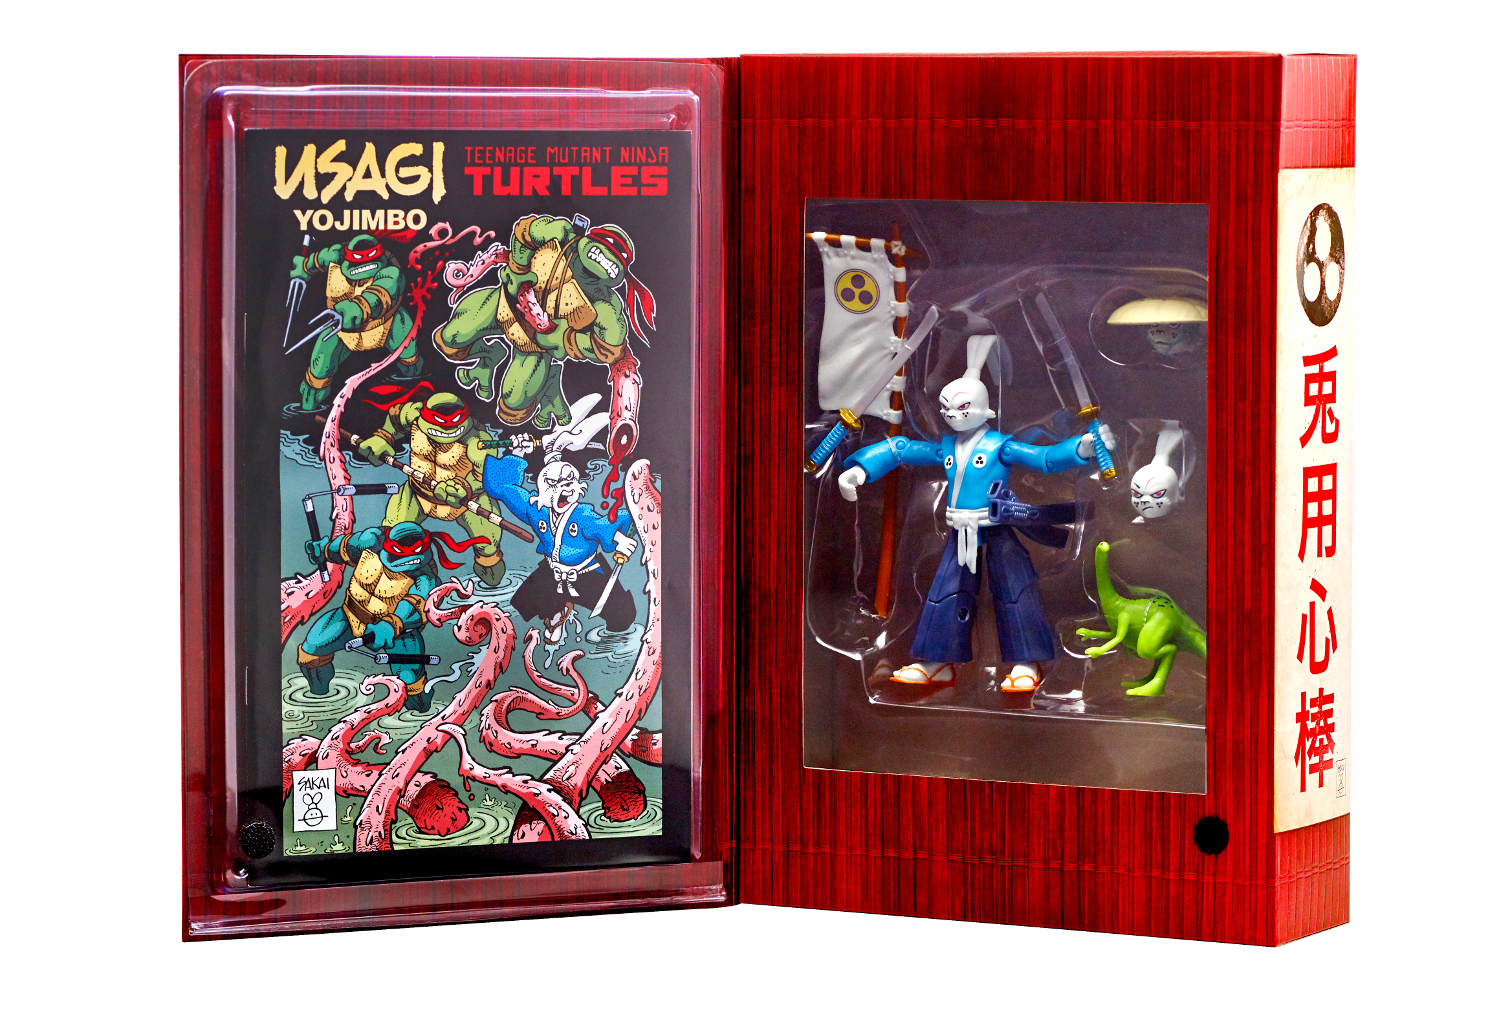 Playmates Toys Usagi Yojimbo And Voltron Sdcc 2017 Exclusives The